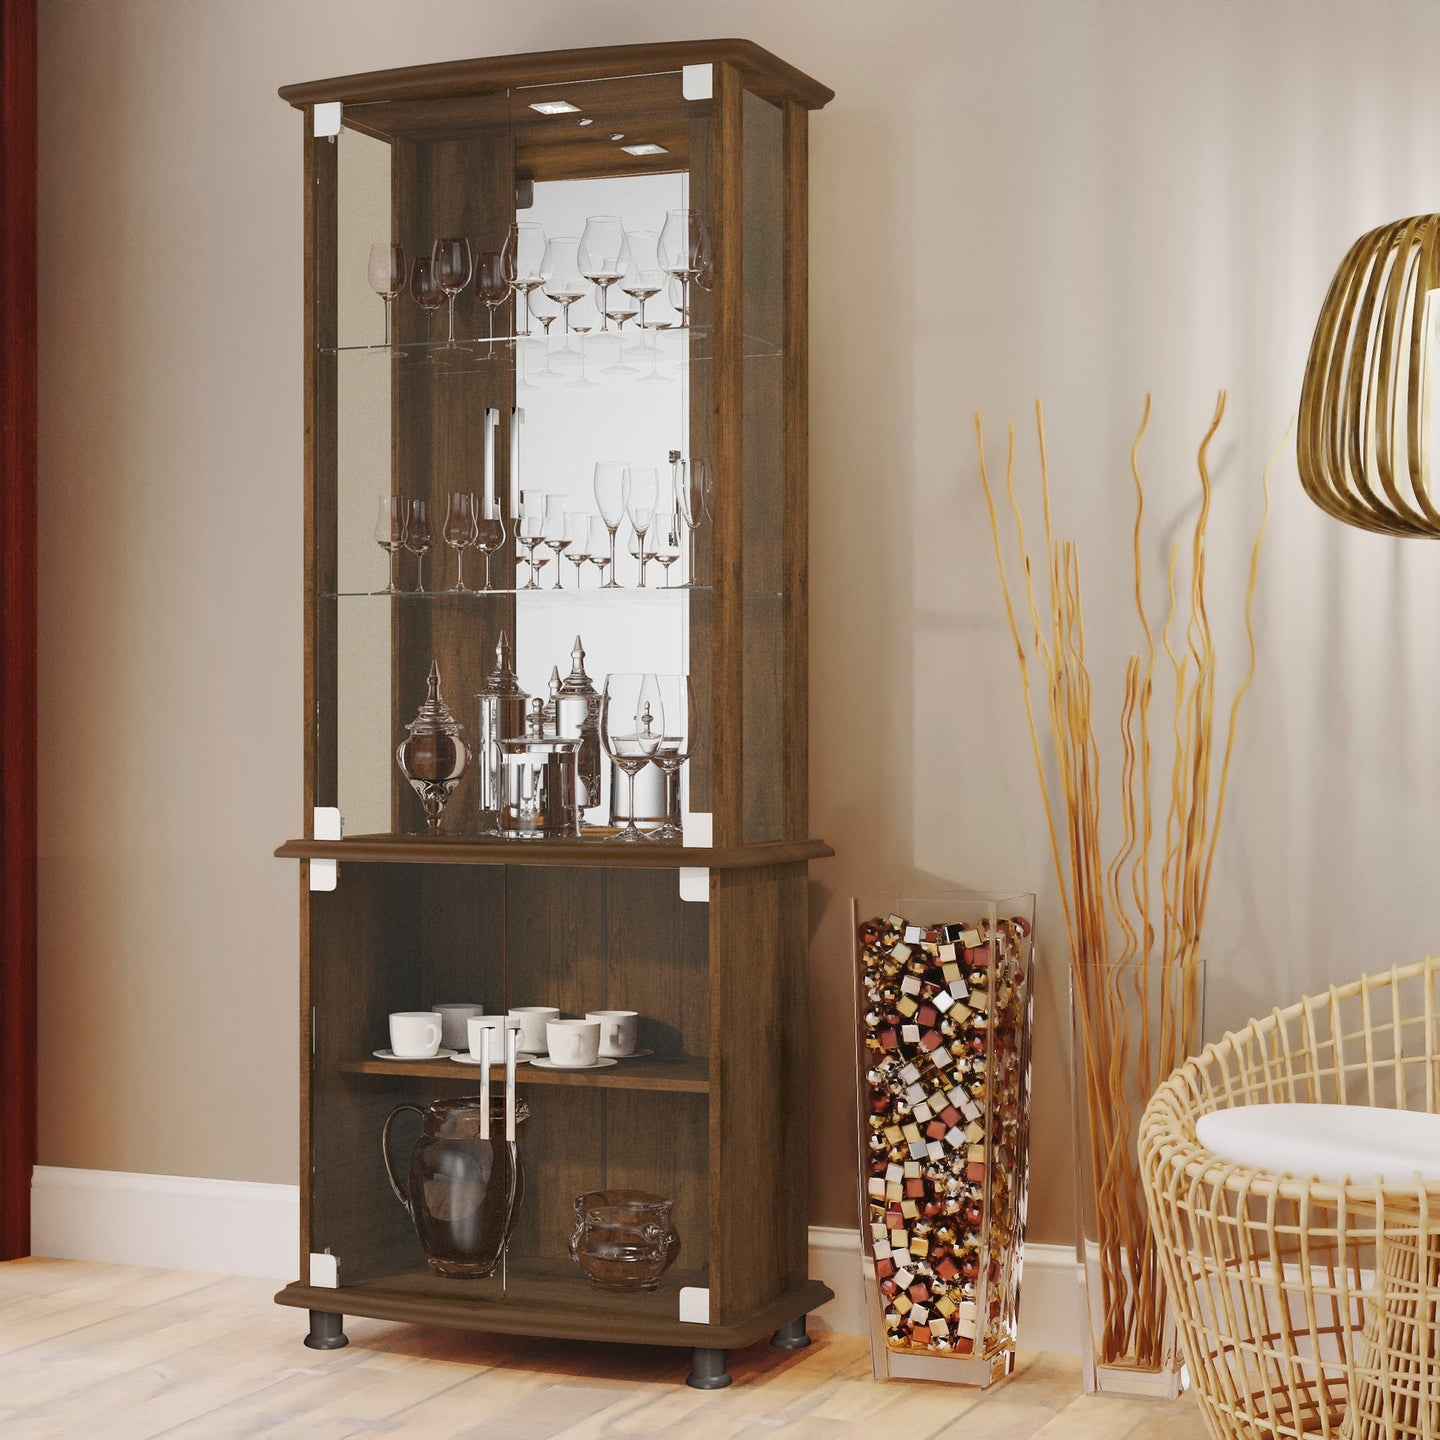 Boahaus Stirling Bar Cabinet with Lights